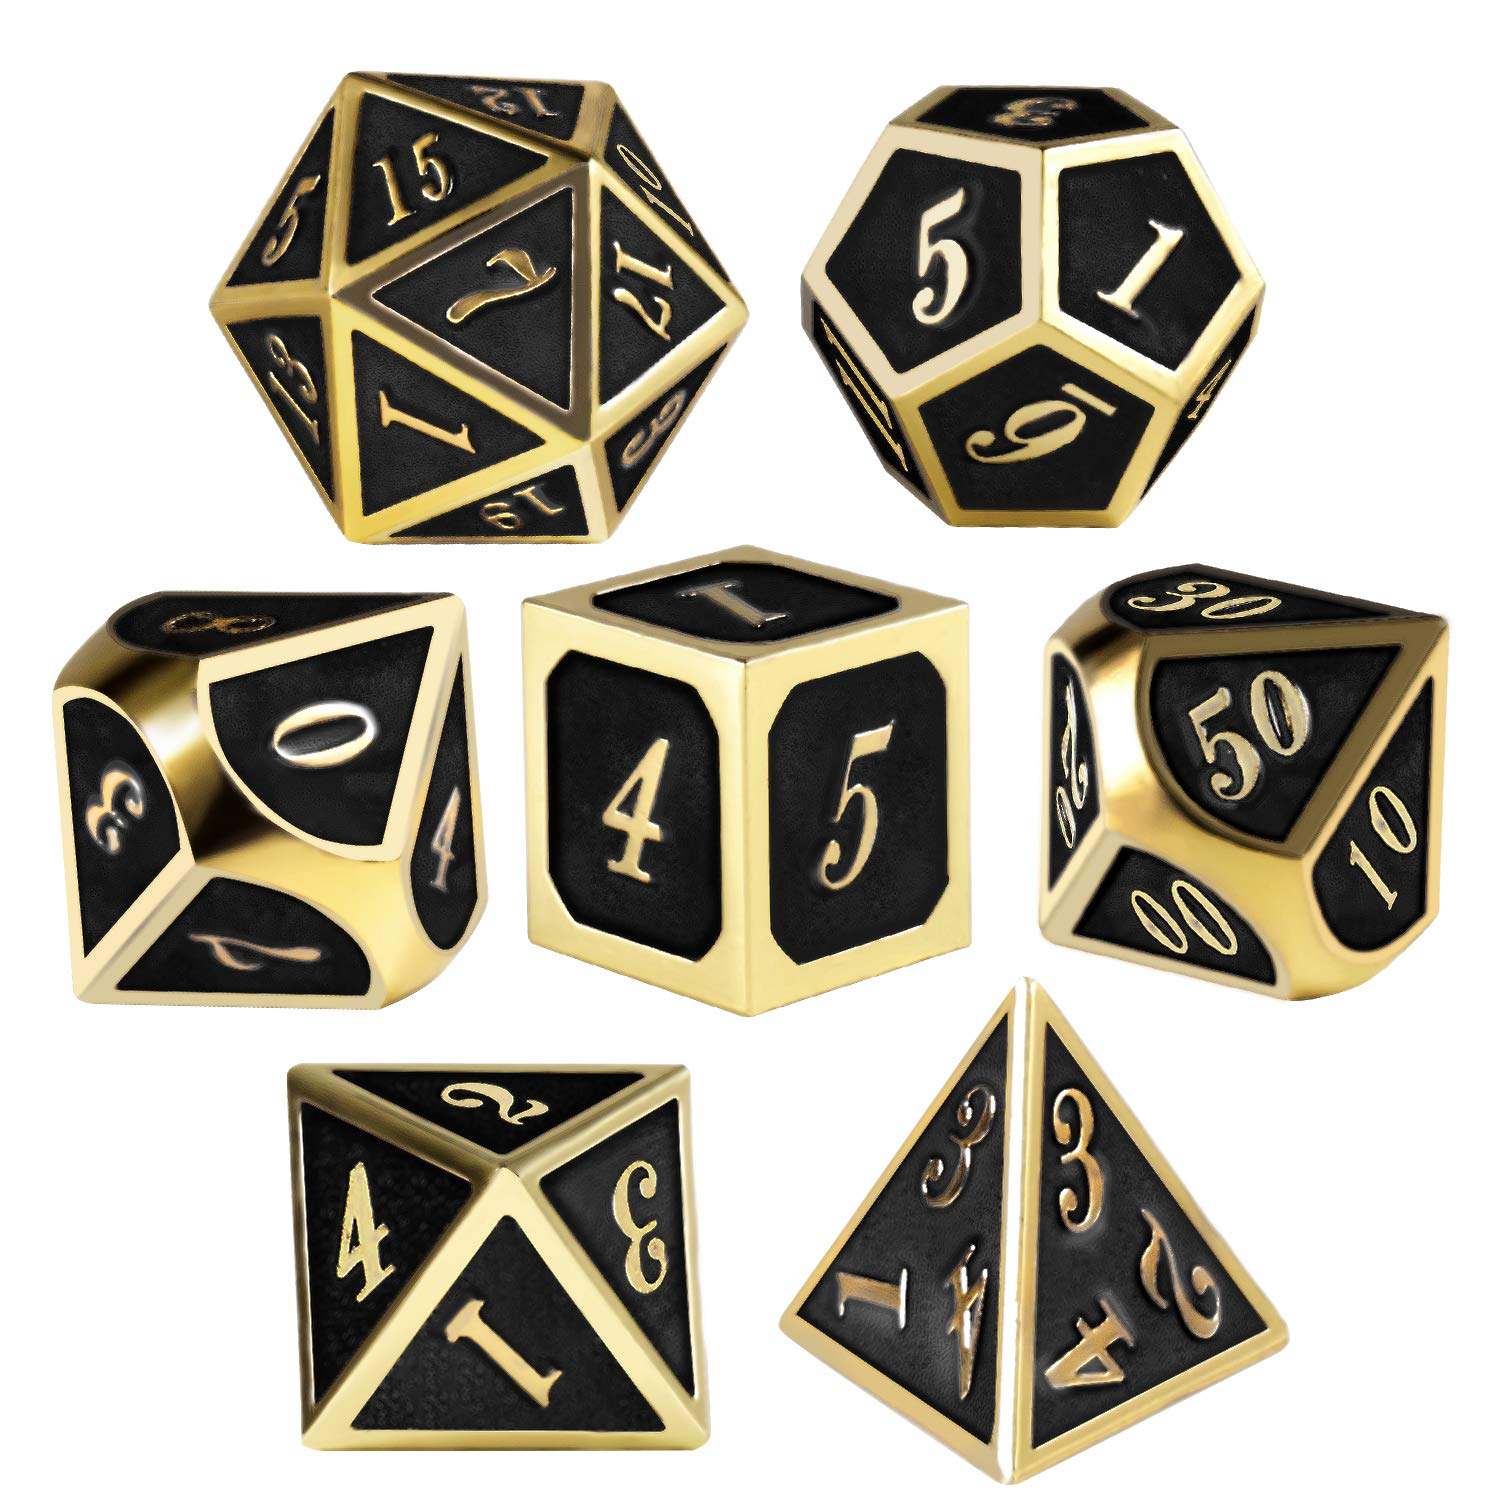 QMAY Metal Dices Set, 7 Pieces Metal D&D Dice Role Playing Dice for Dungeons and Dragons RPG Games & Pathfinder Shadowrun - with Metal Box, Velvet Bag and 2 Pencils(Black Gold)